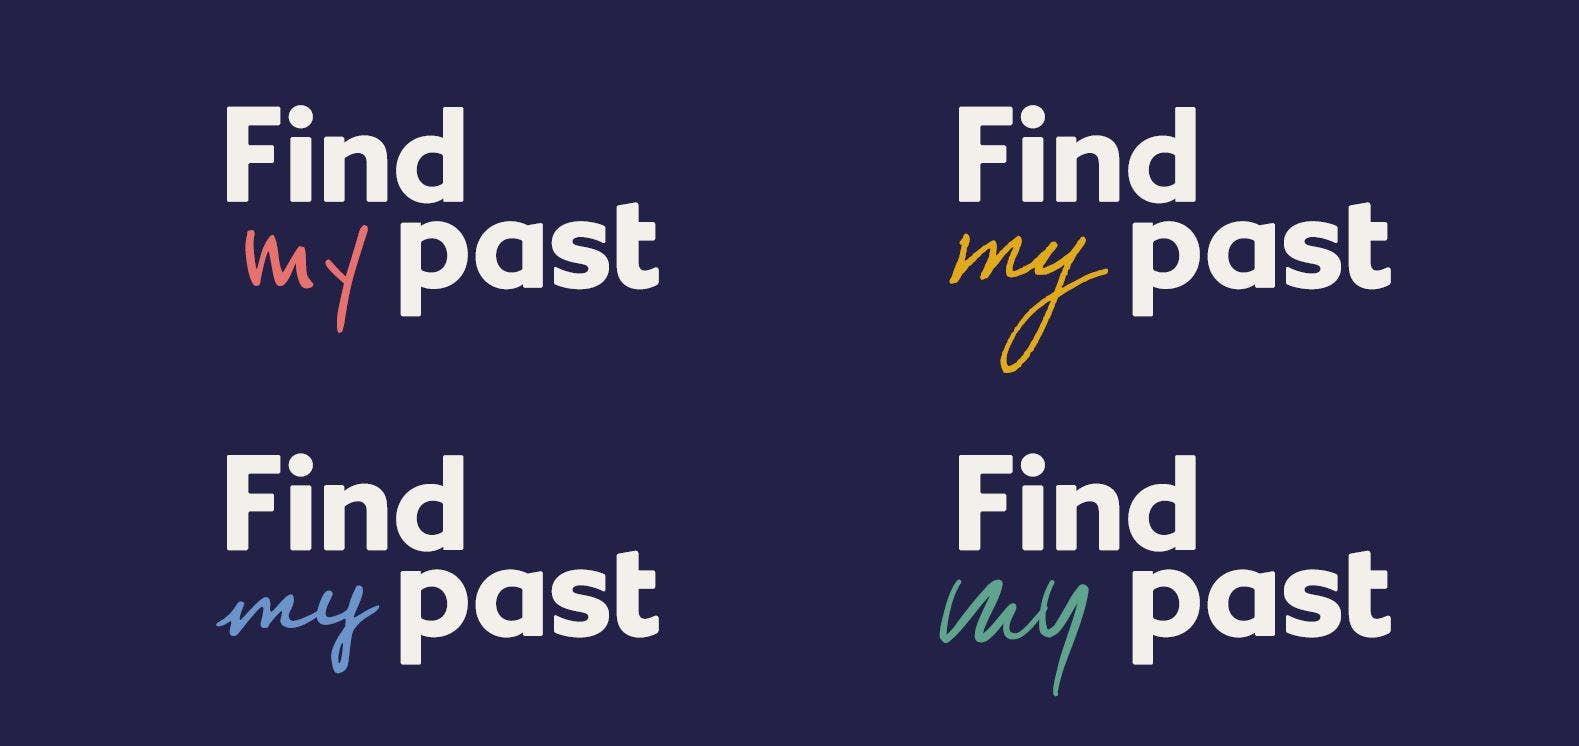 Findmypast new brand 2019